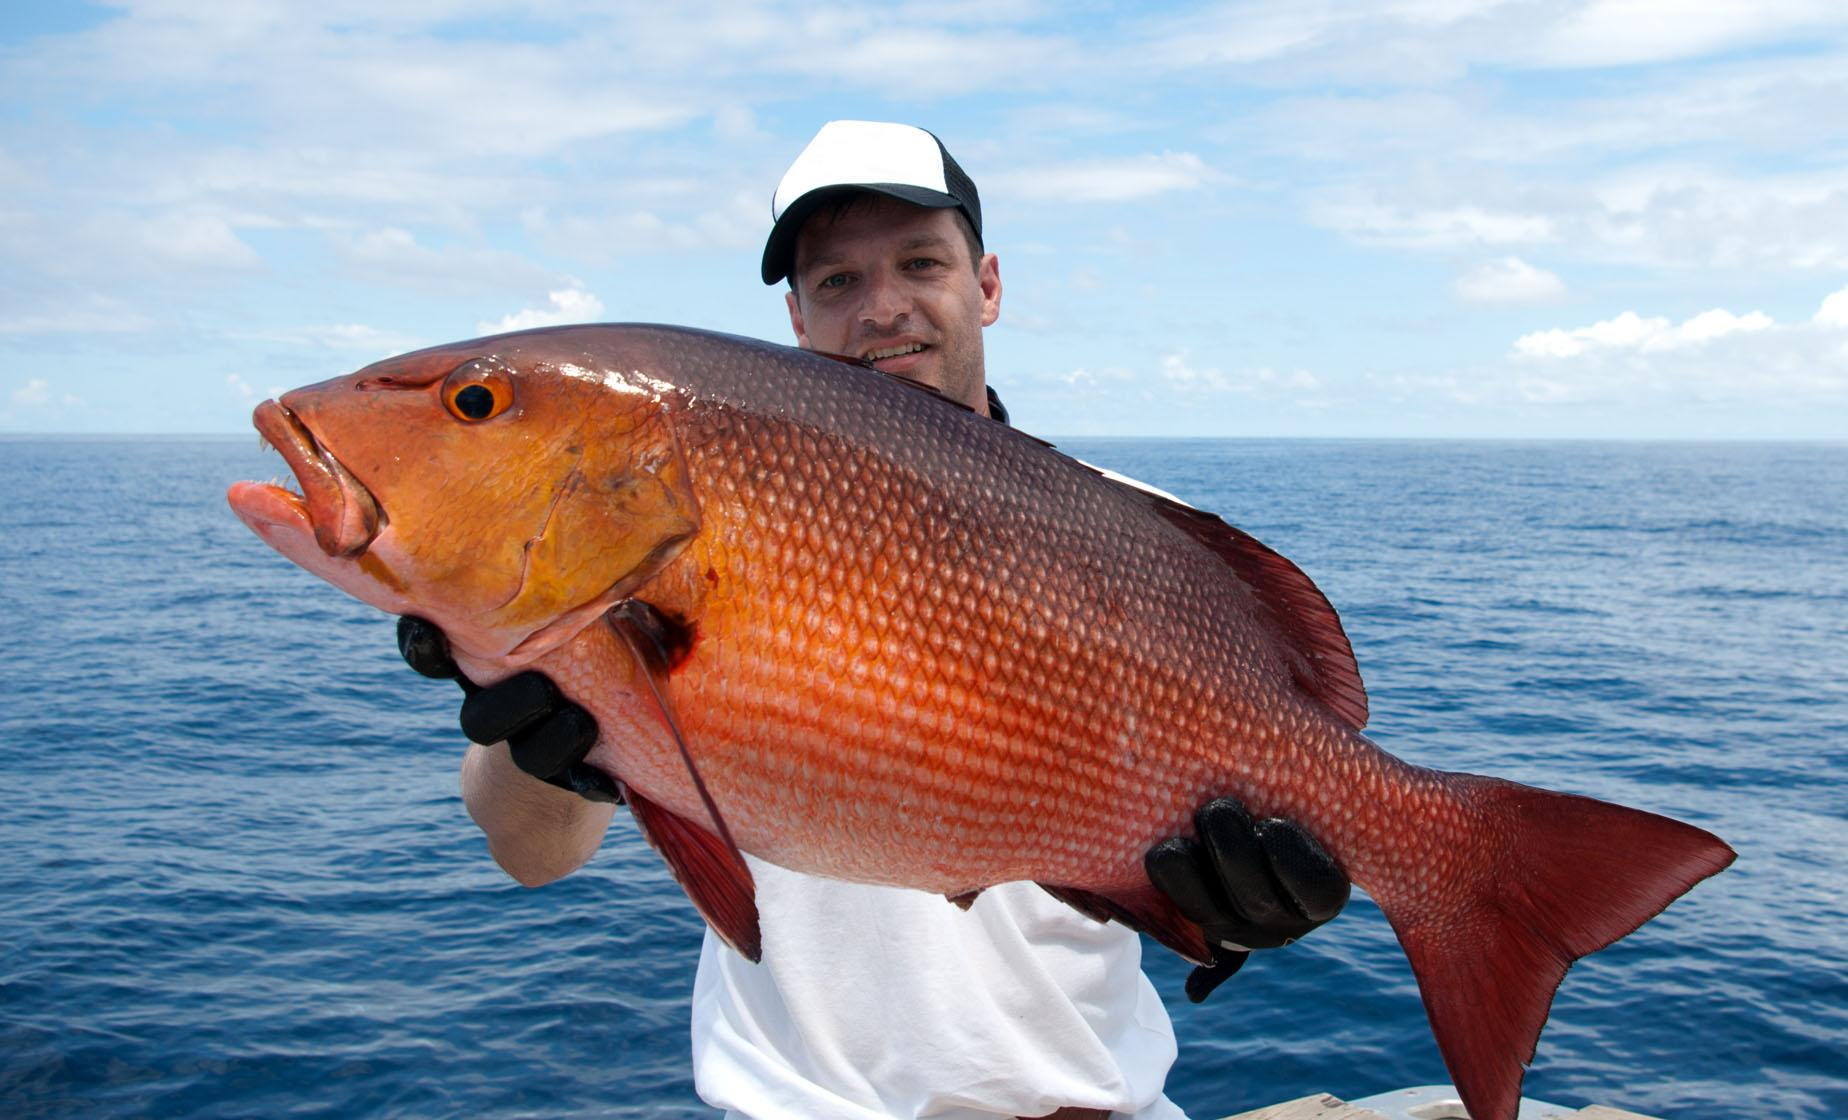 Grand cayman reef fishing charter private half day port tour for Grand cayman fishing